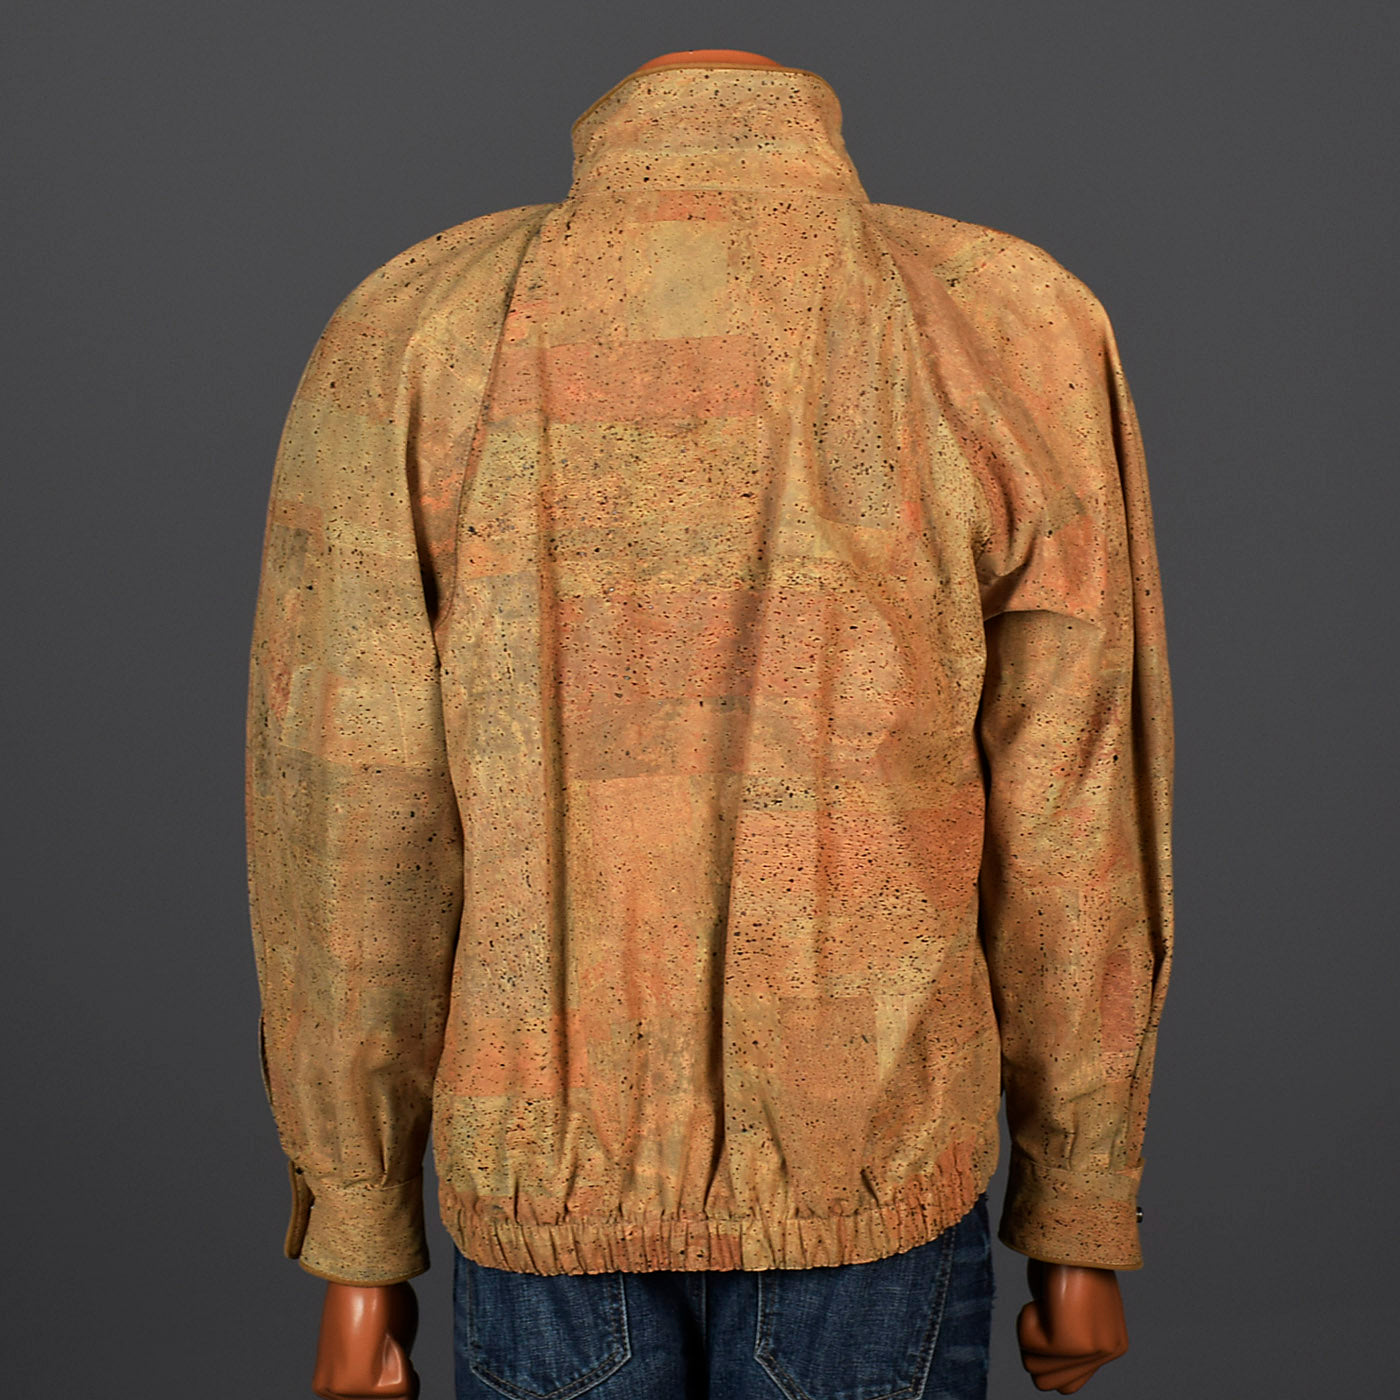 Deadstock 1980s Men's Cork Jacket by Corkway Spain